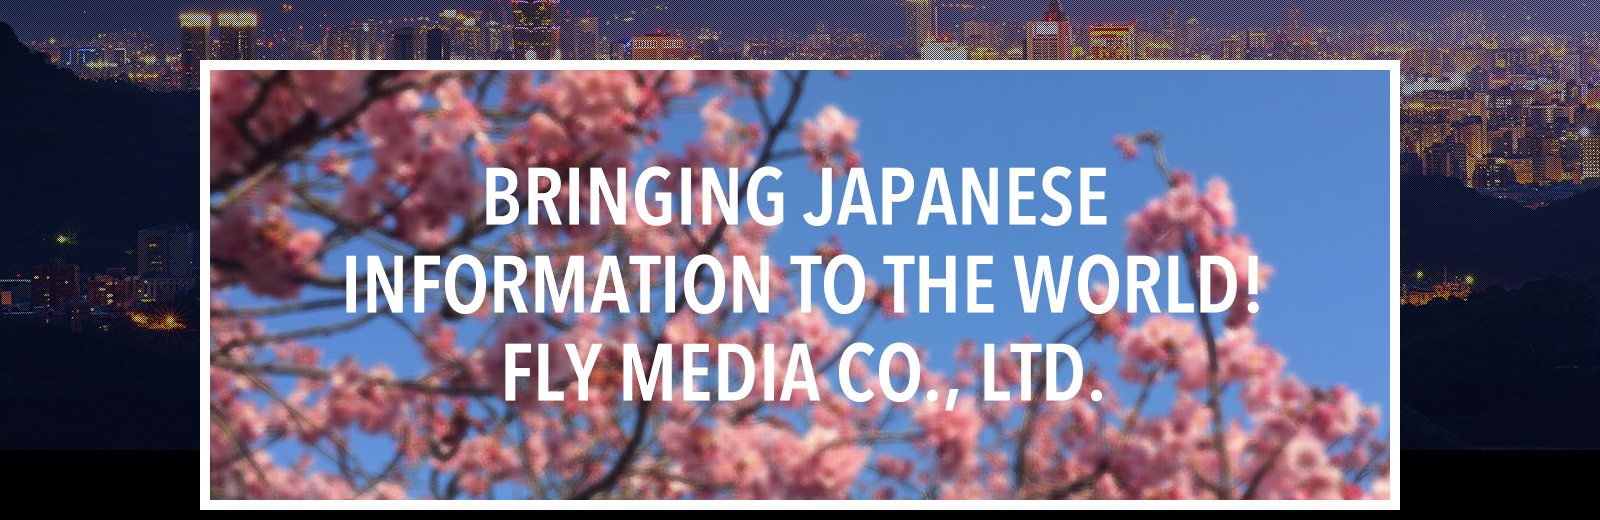 ASIA INFORMATION TO THE WORLD! FLY MEDIA CO.,LTD